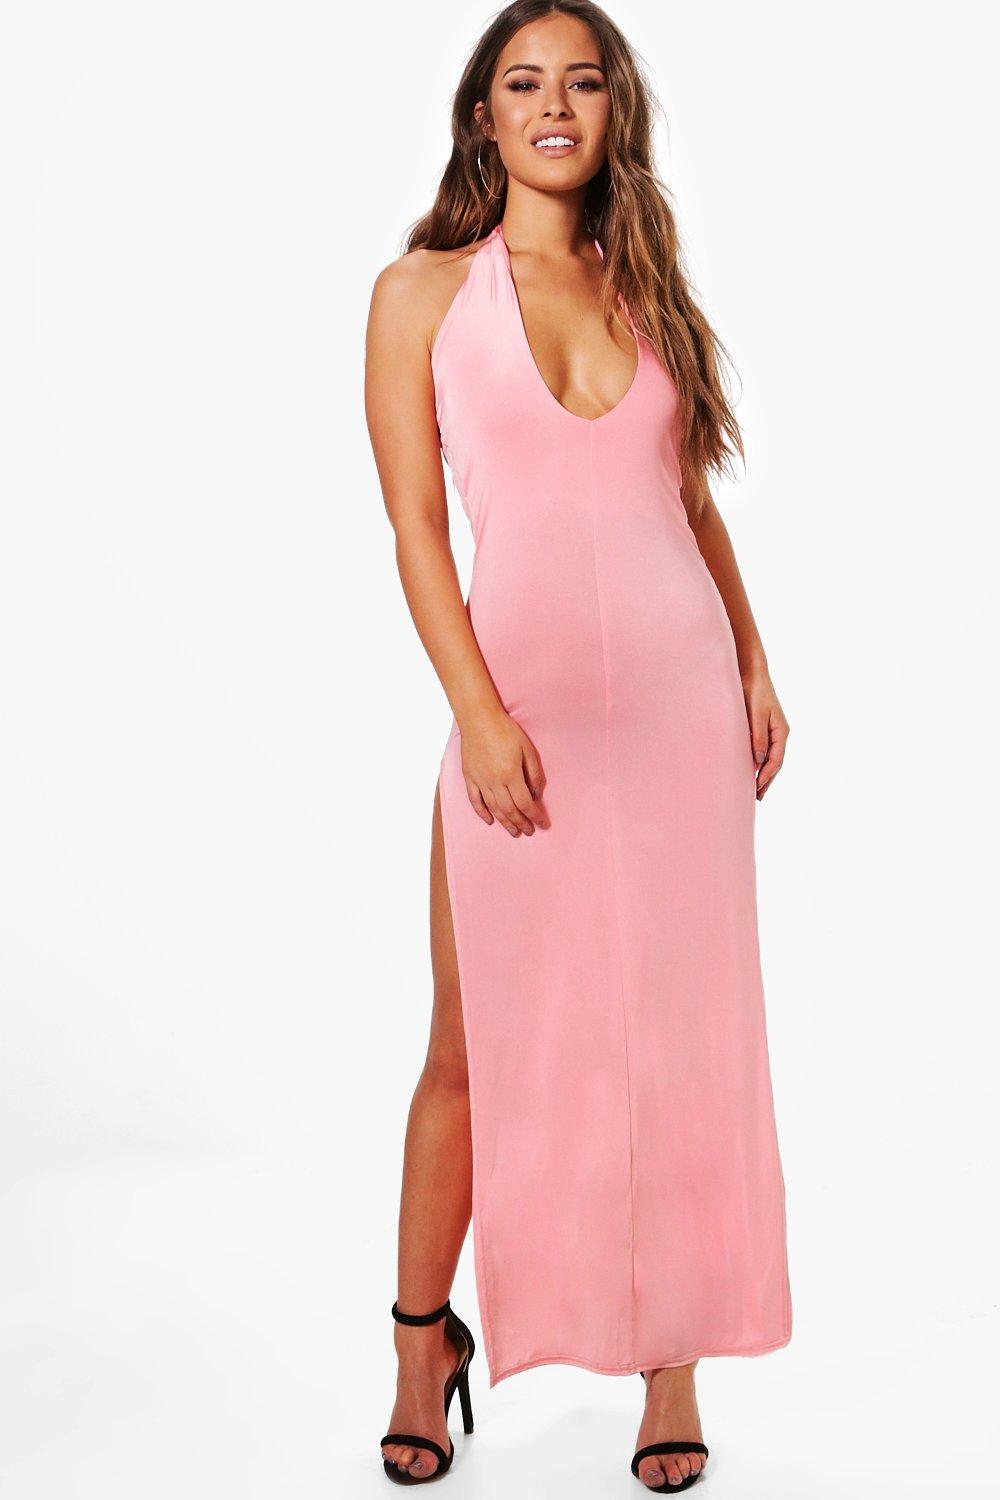 f71a0321eb04 Petite Halterneck Plunge Slinky Maxi Dress. Hover to zoom